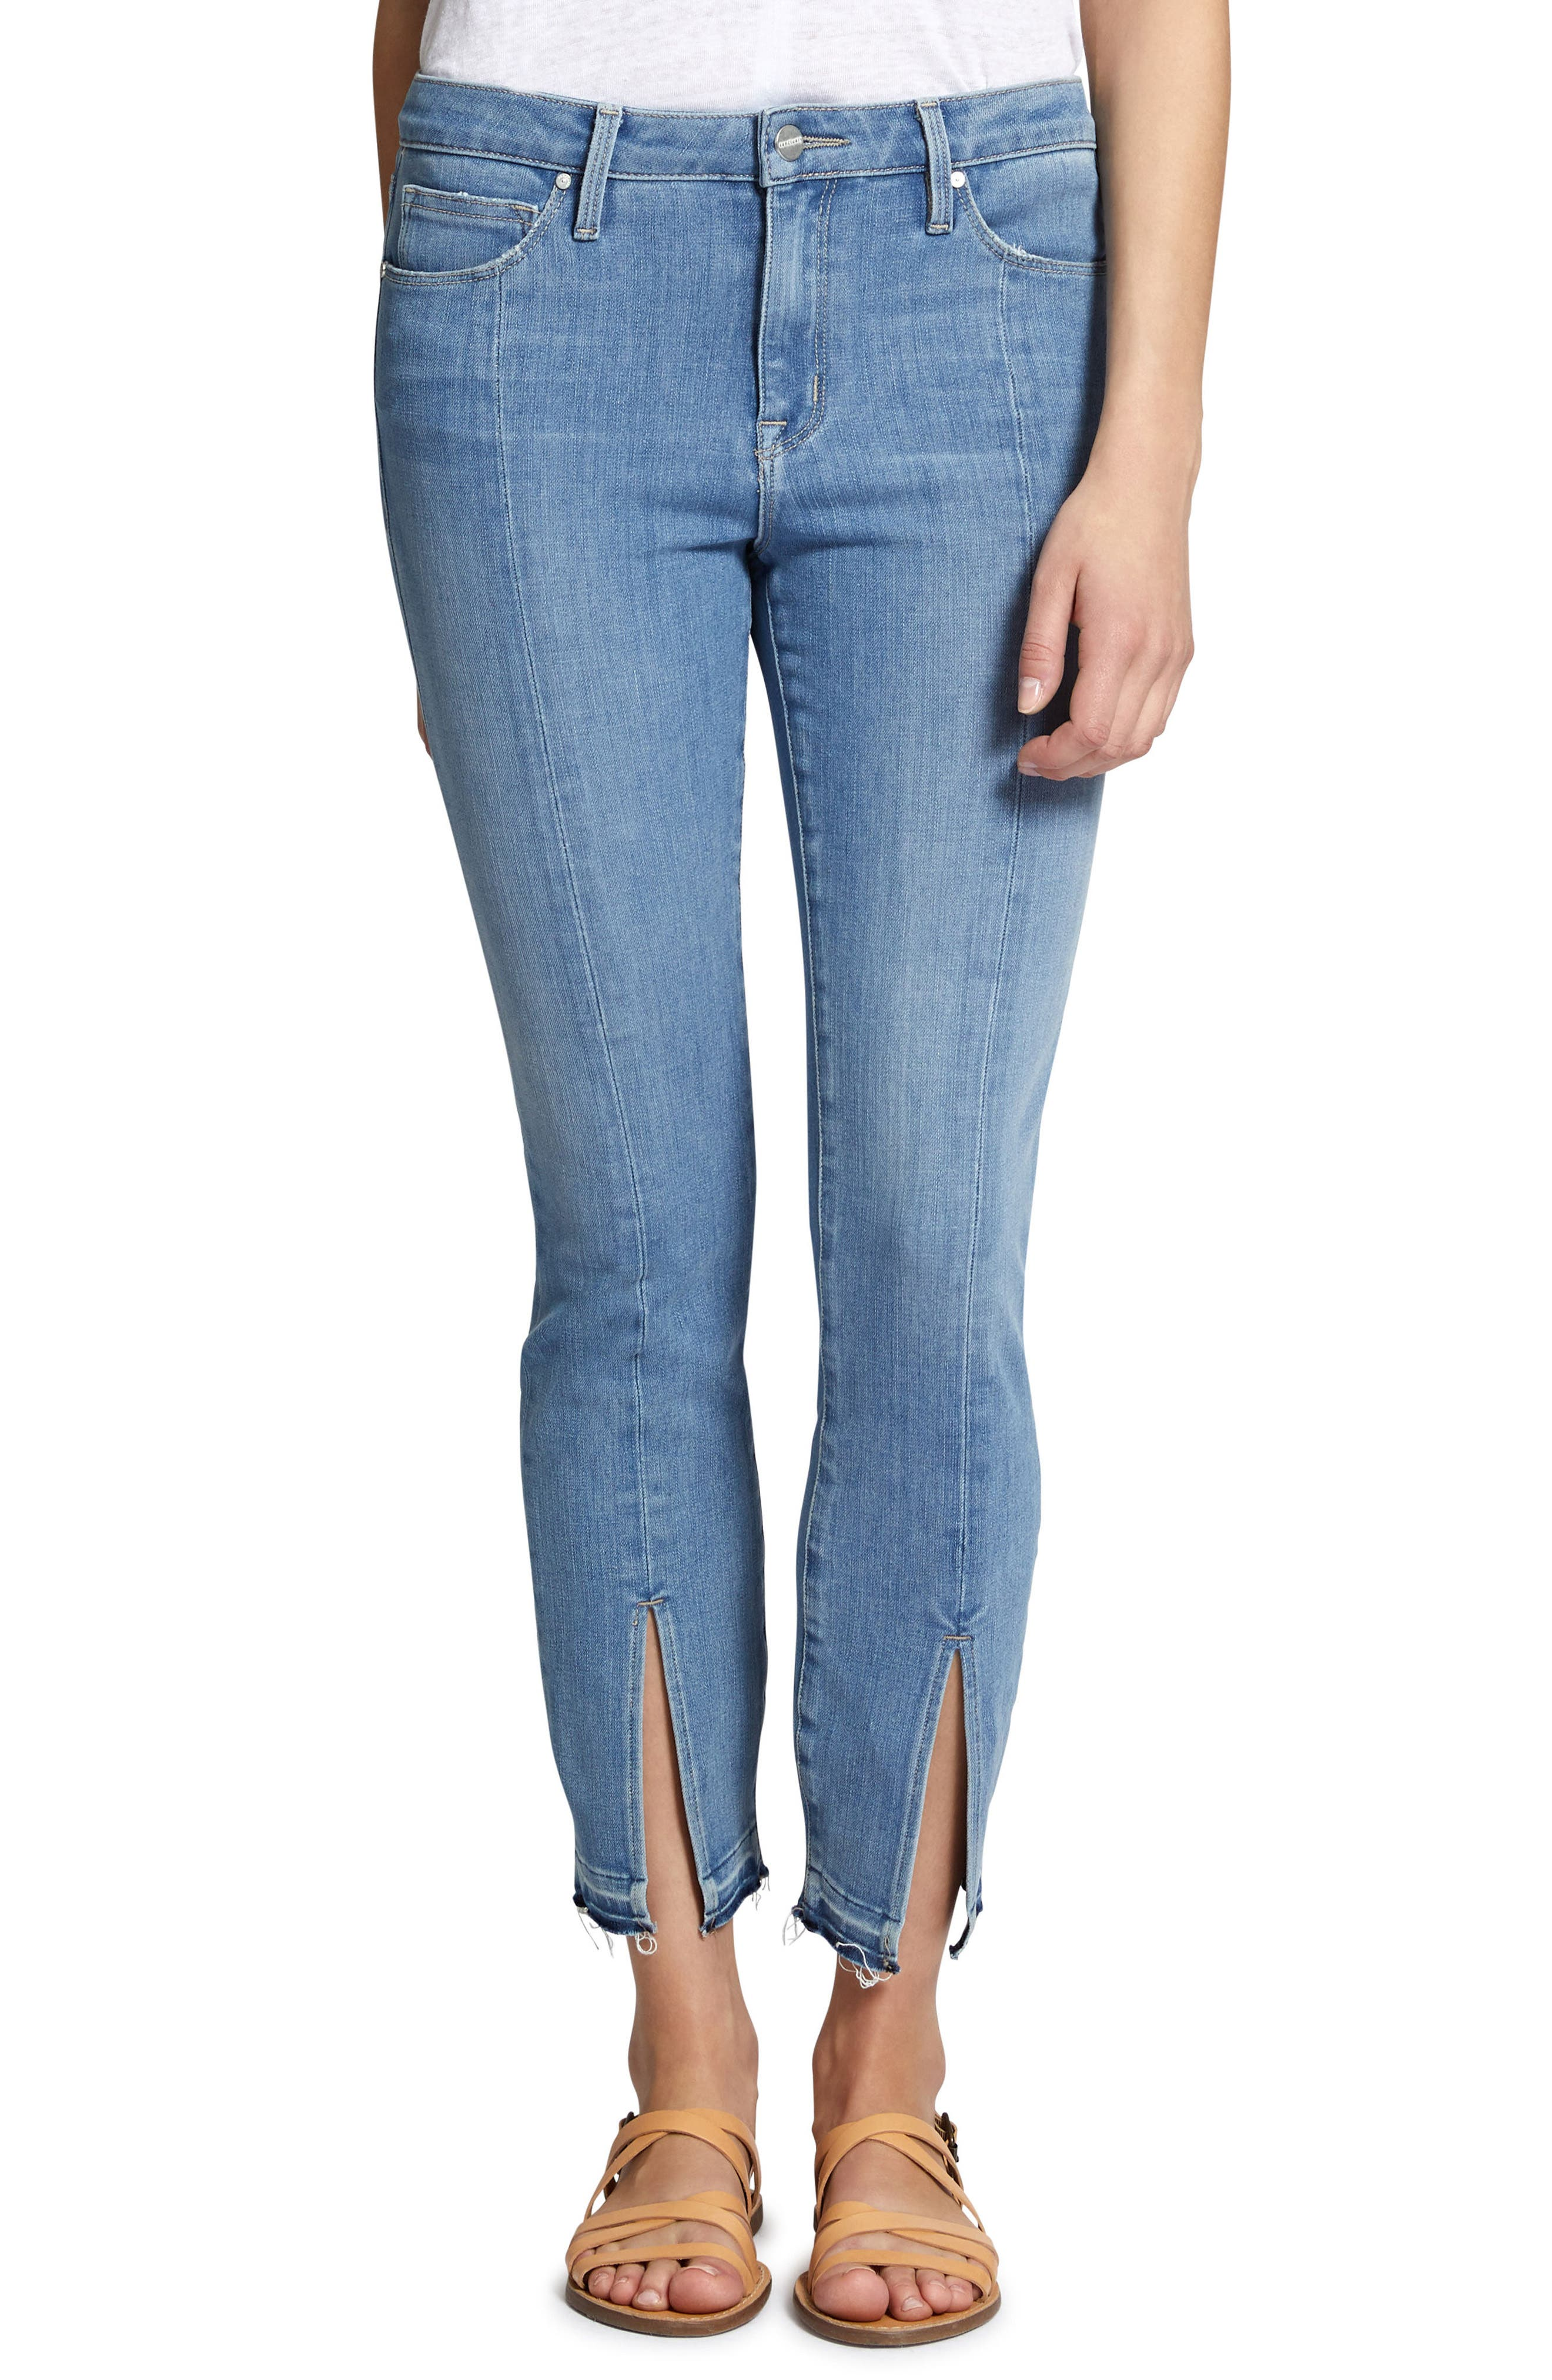 Robbie Spring Slit Jeans,                             Main thumbnail 1, color,                             Harley Wash